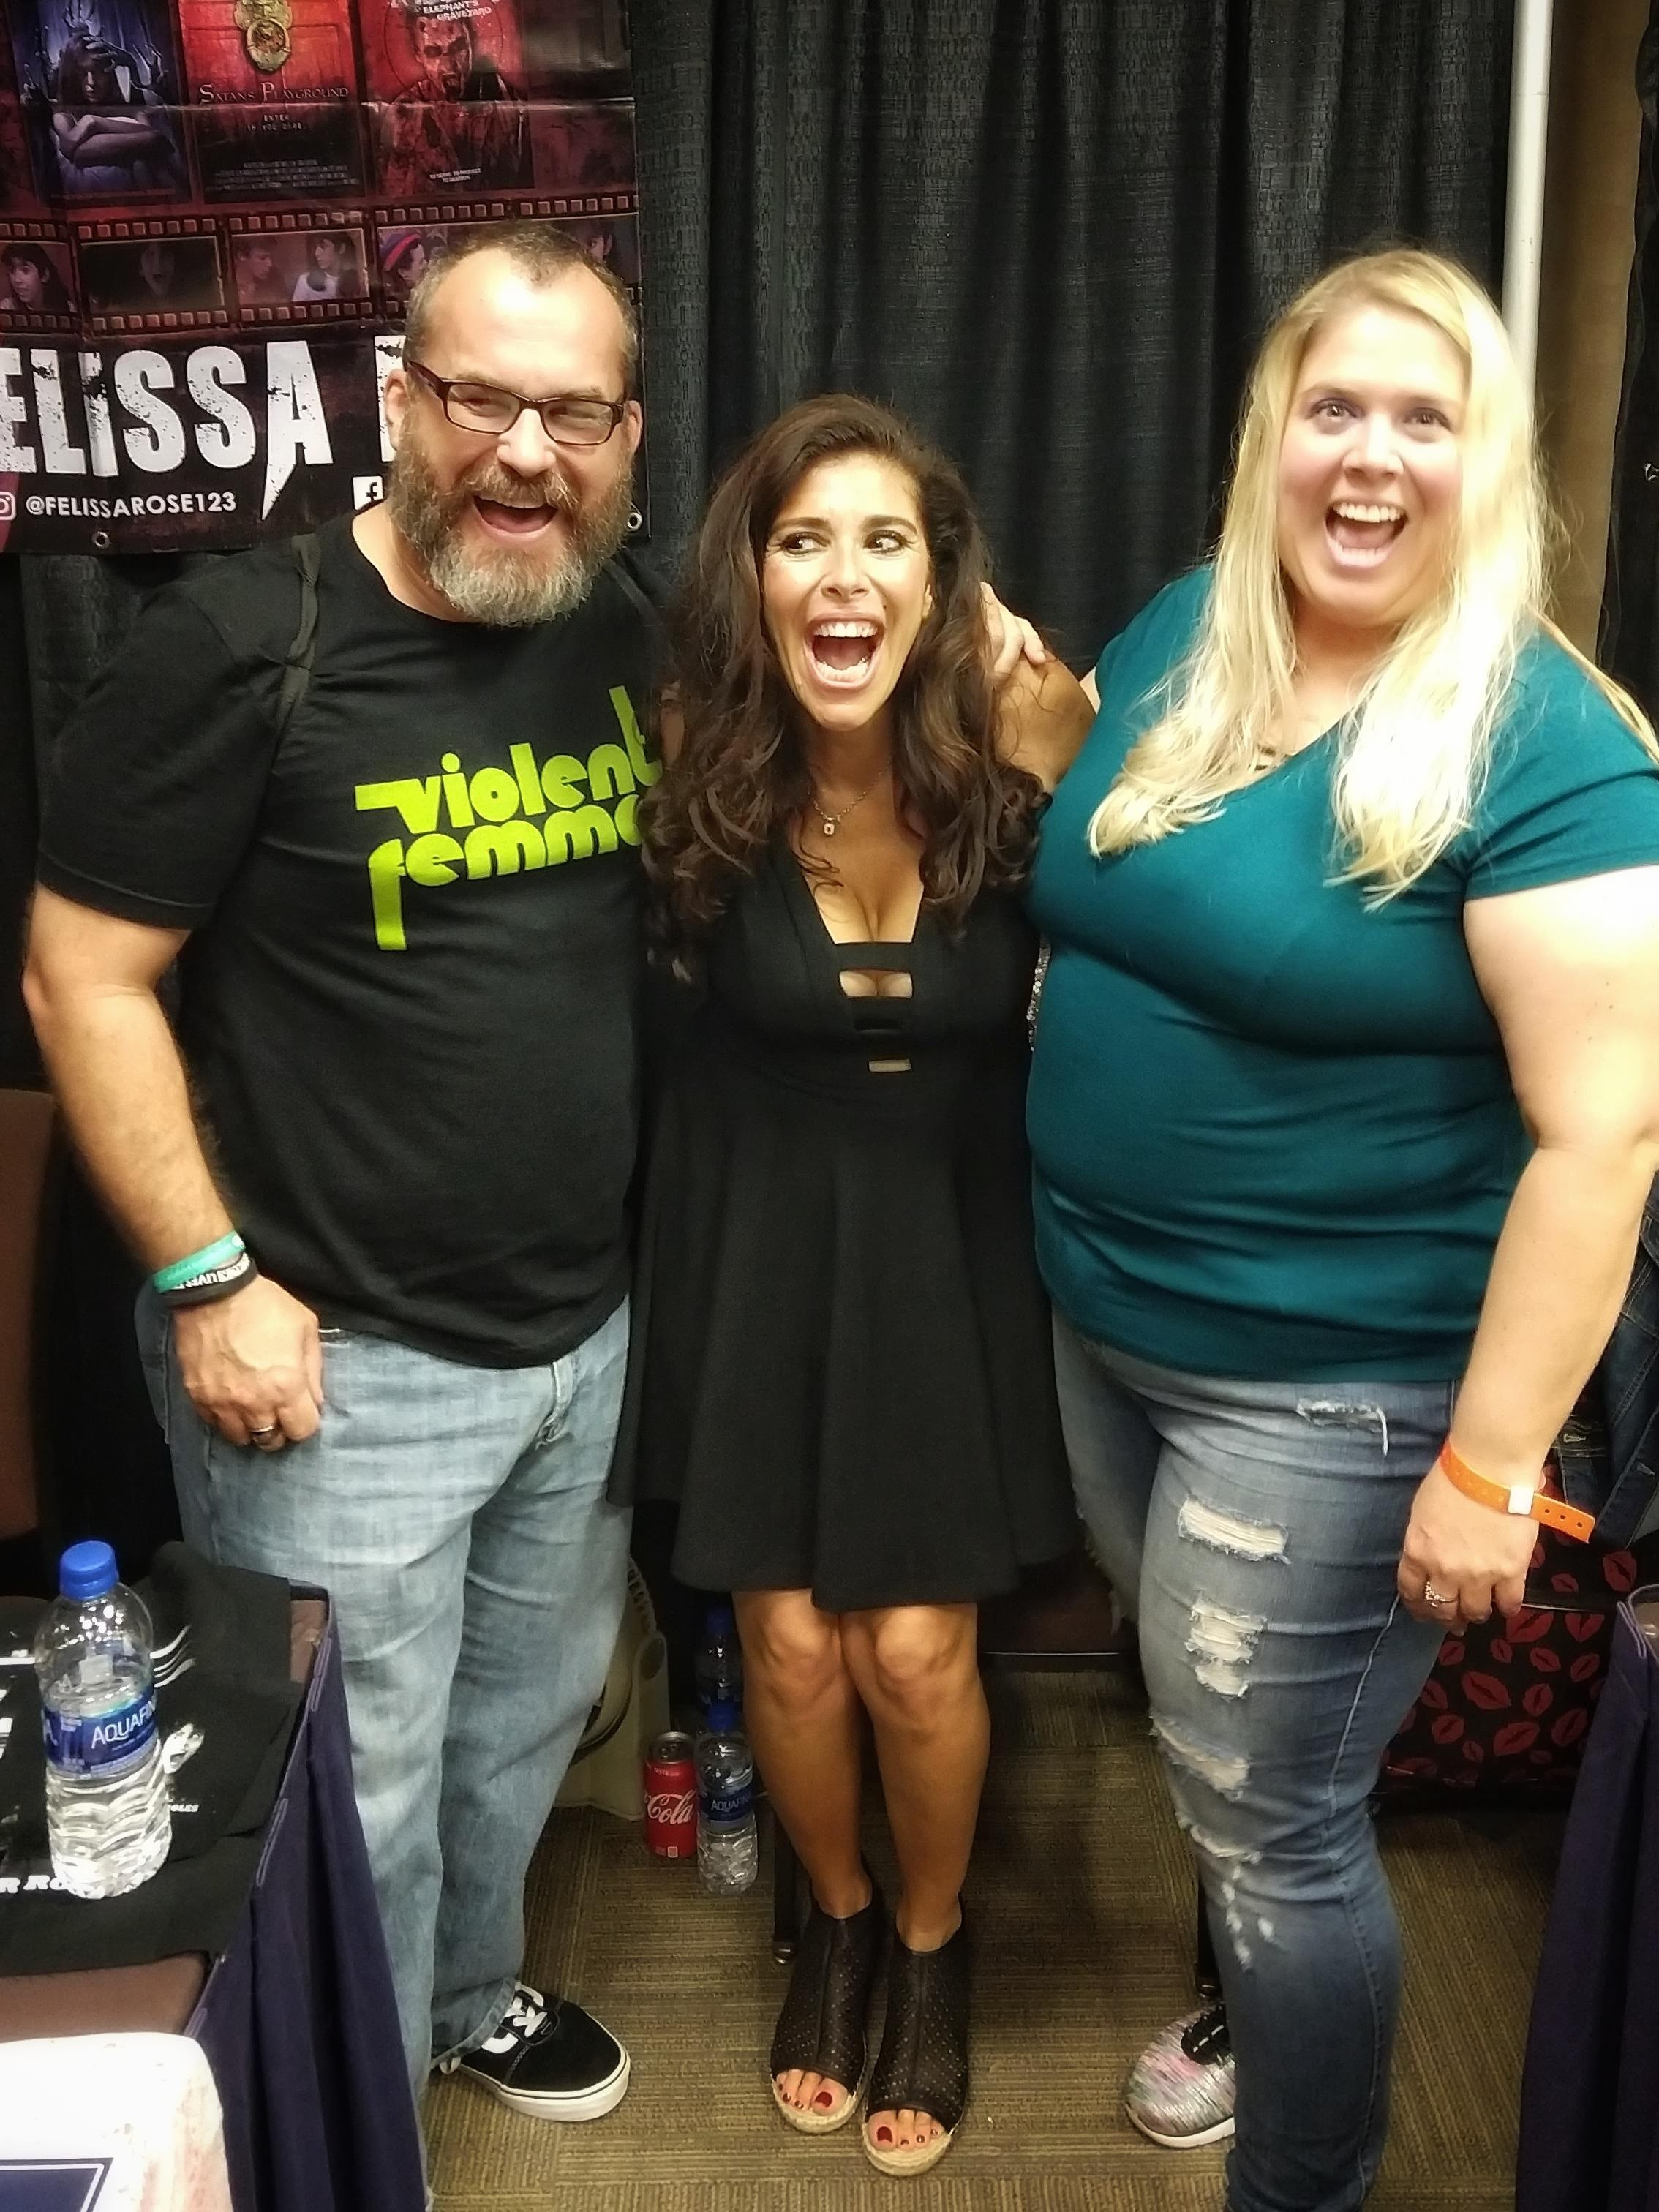 Posing with Felissa Rose